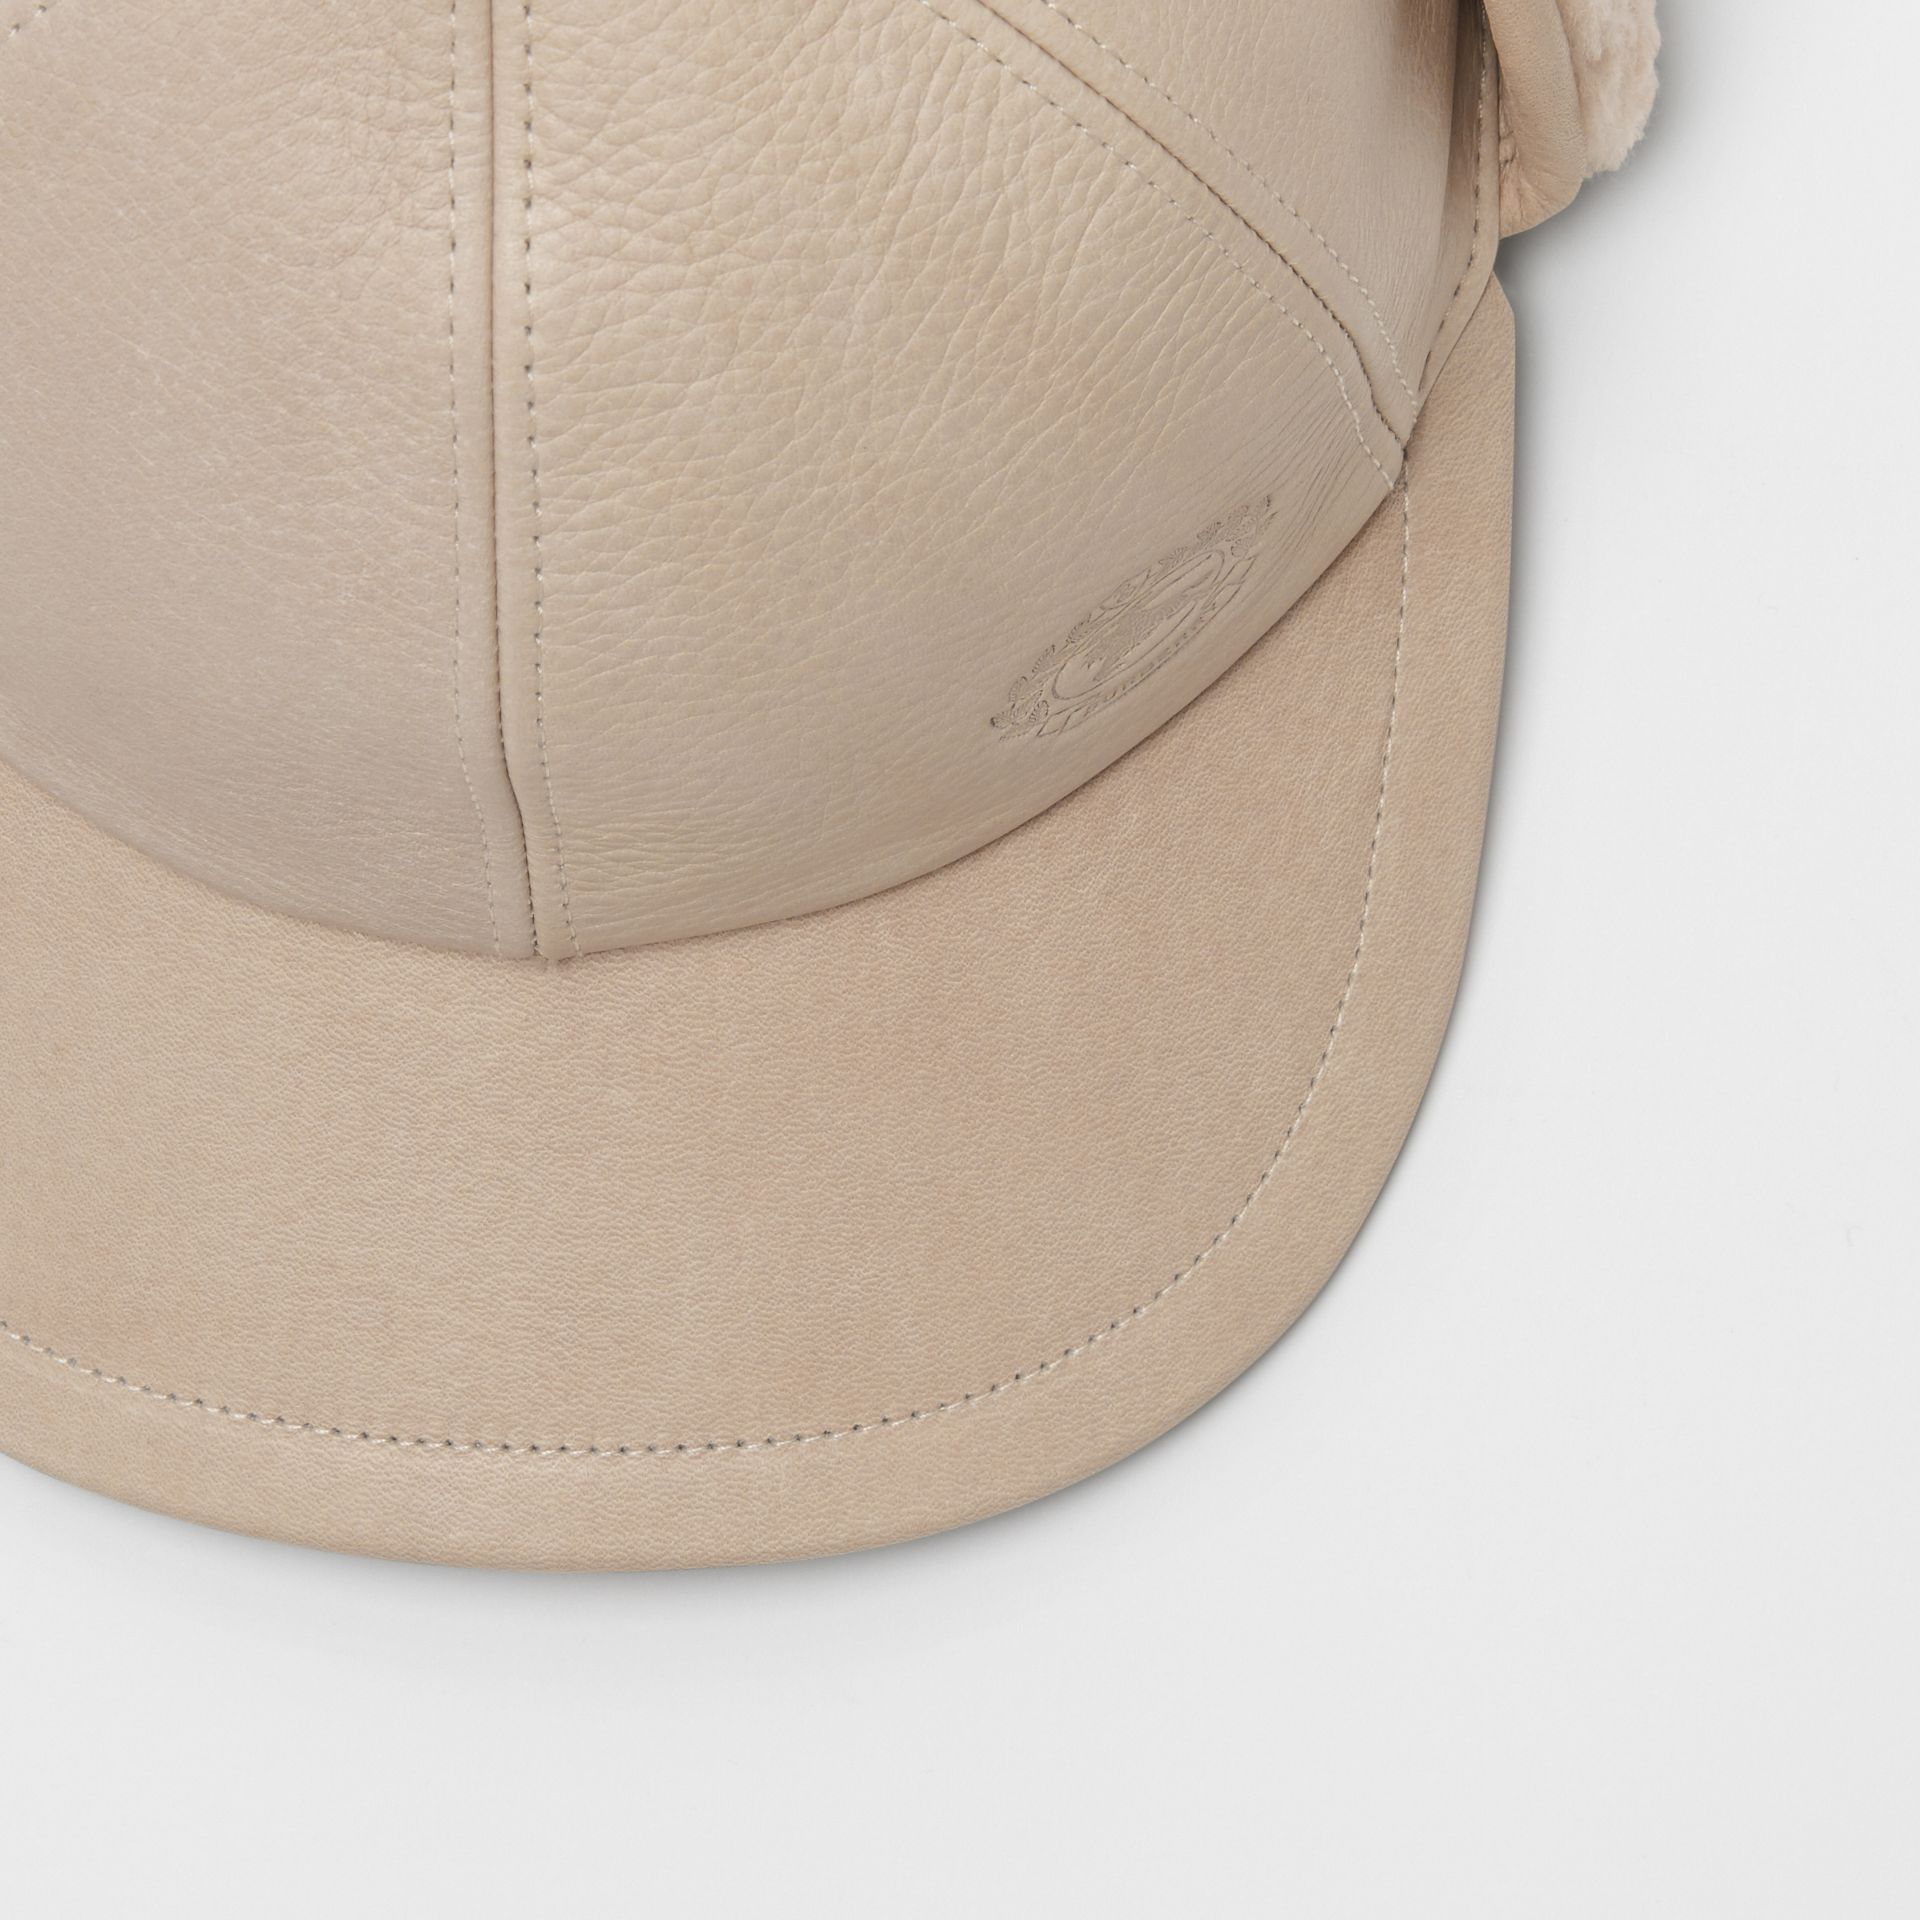 Leather and Shearling Cap in Limestone | Burberry United States - gallery image 1